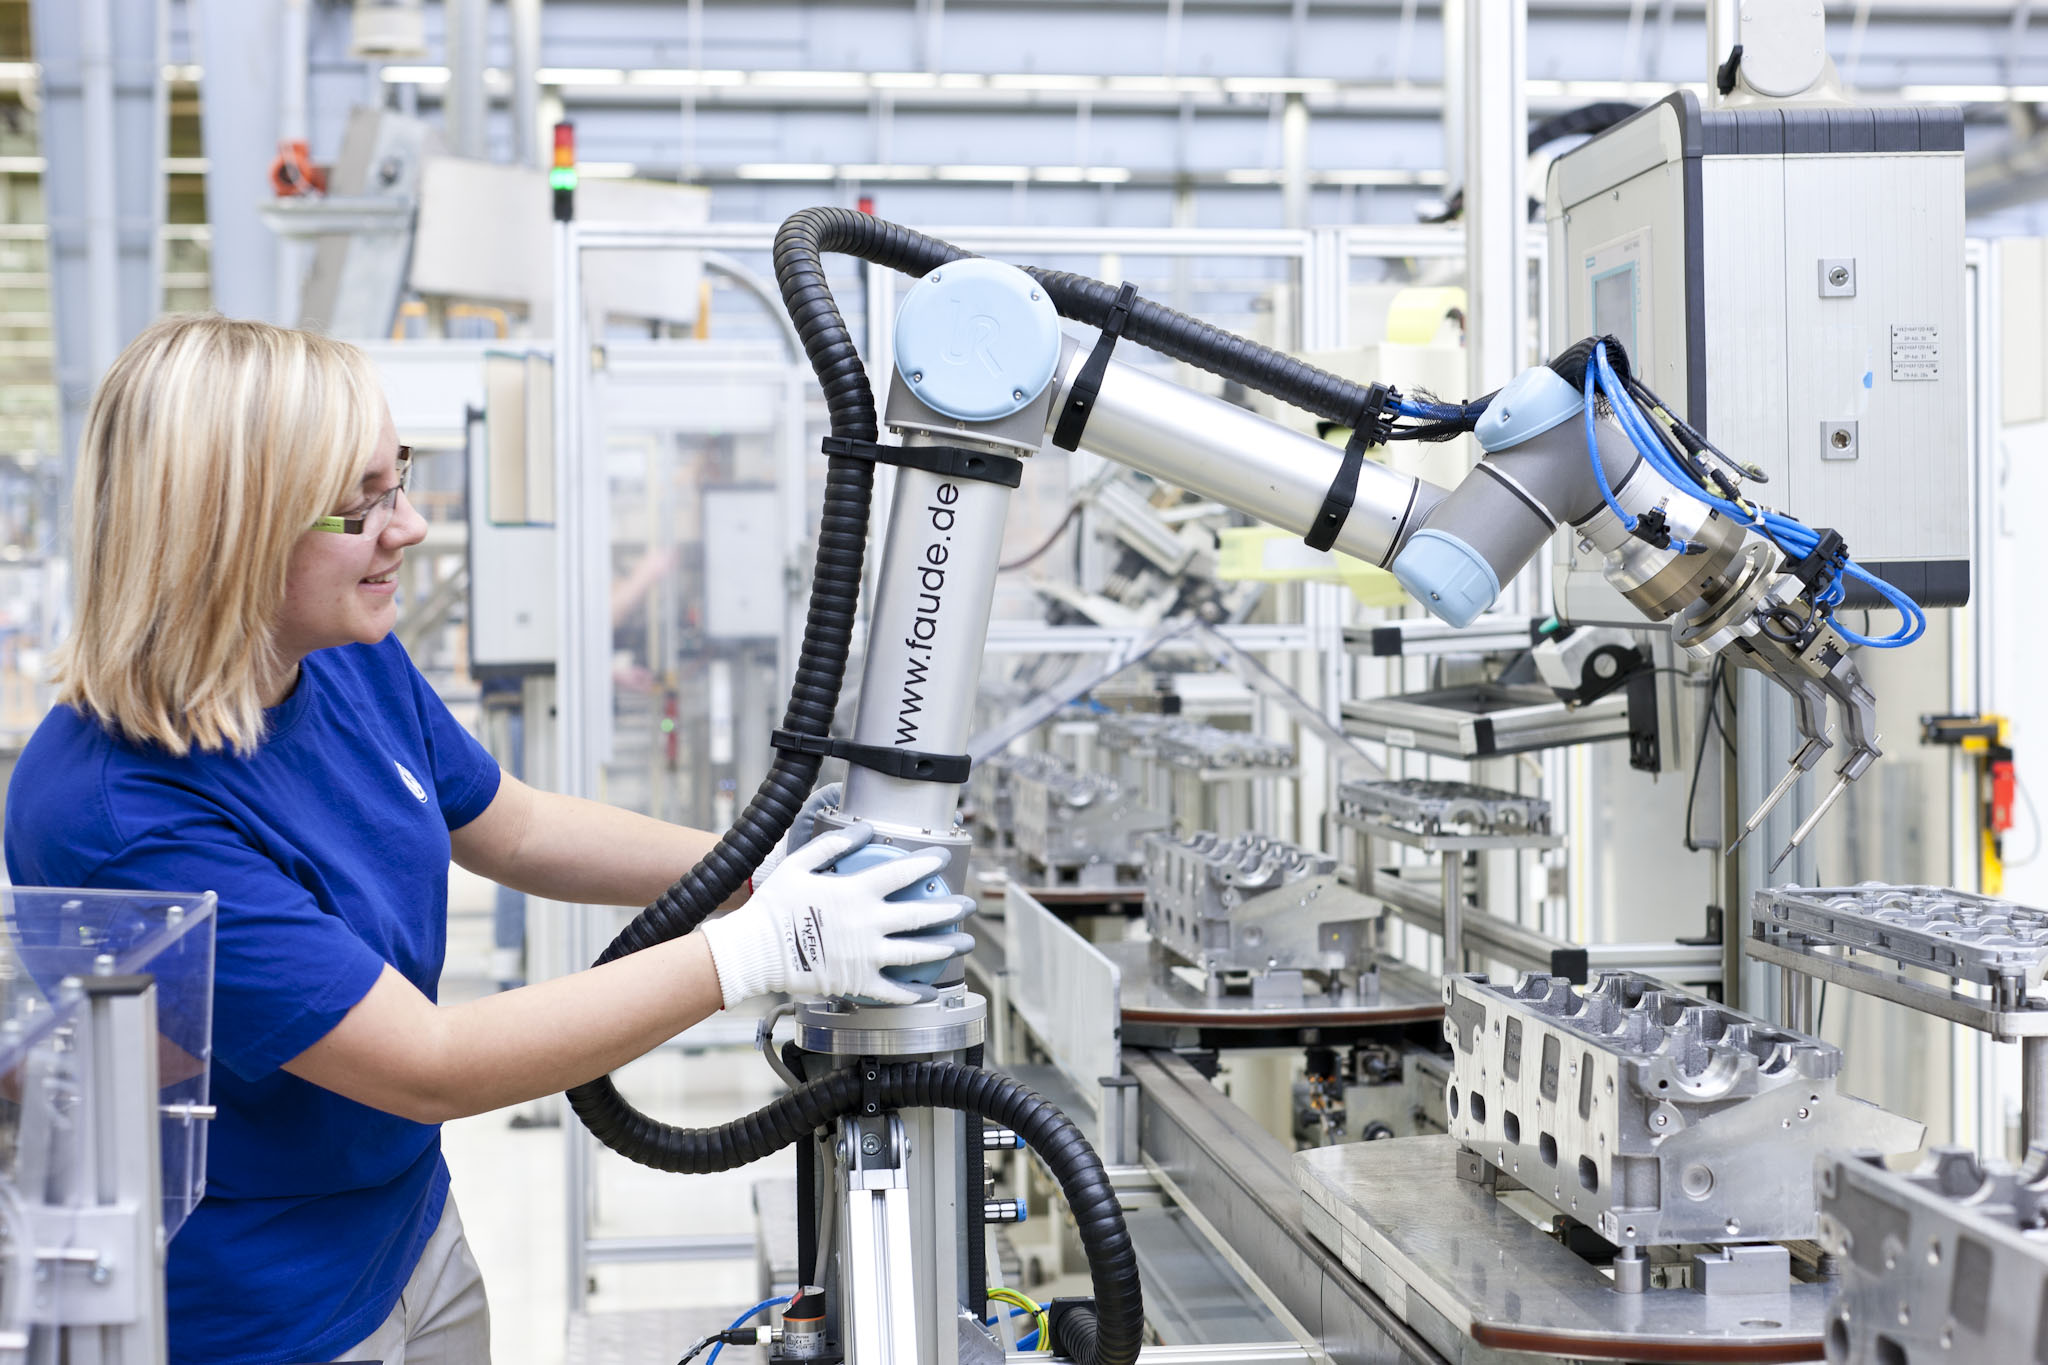 Universal Robots Release their New Generation of Collaborative Robots